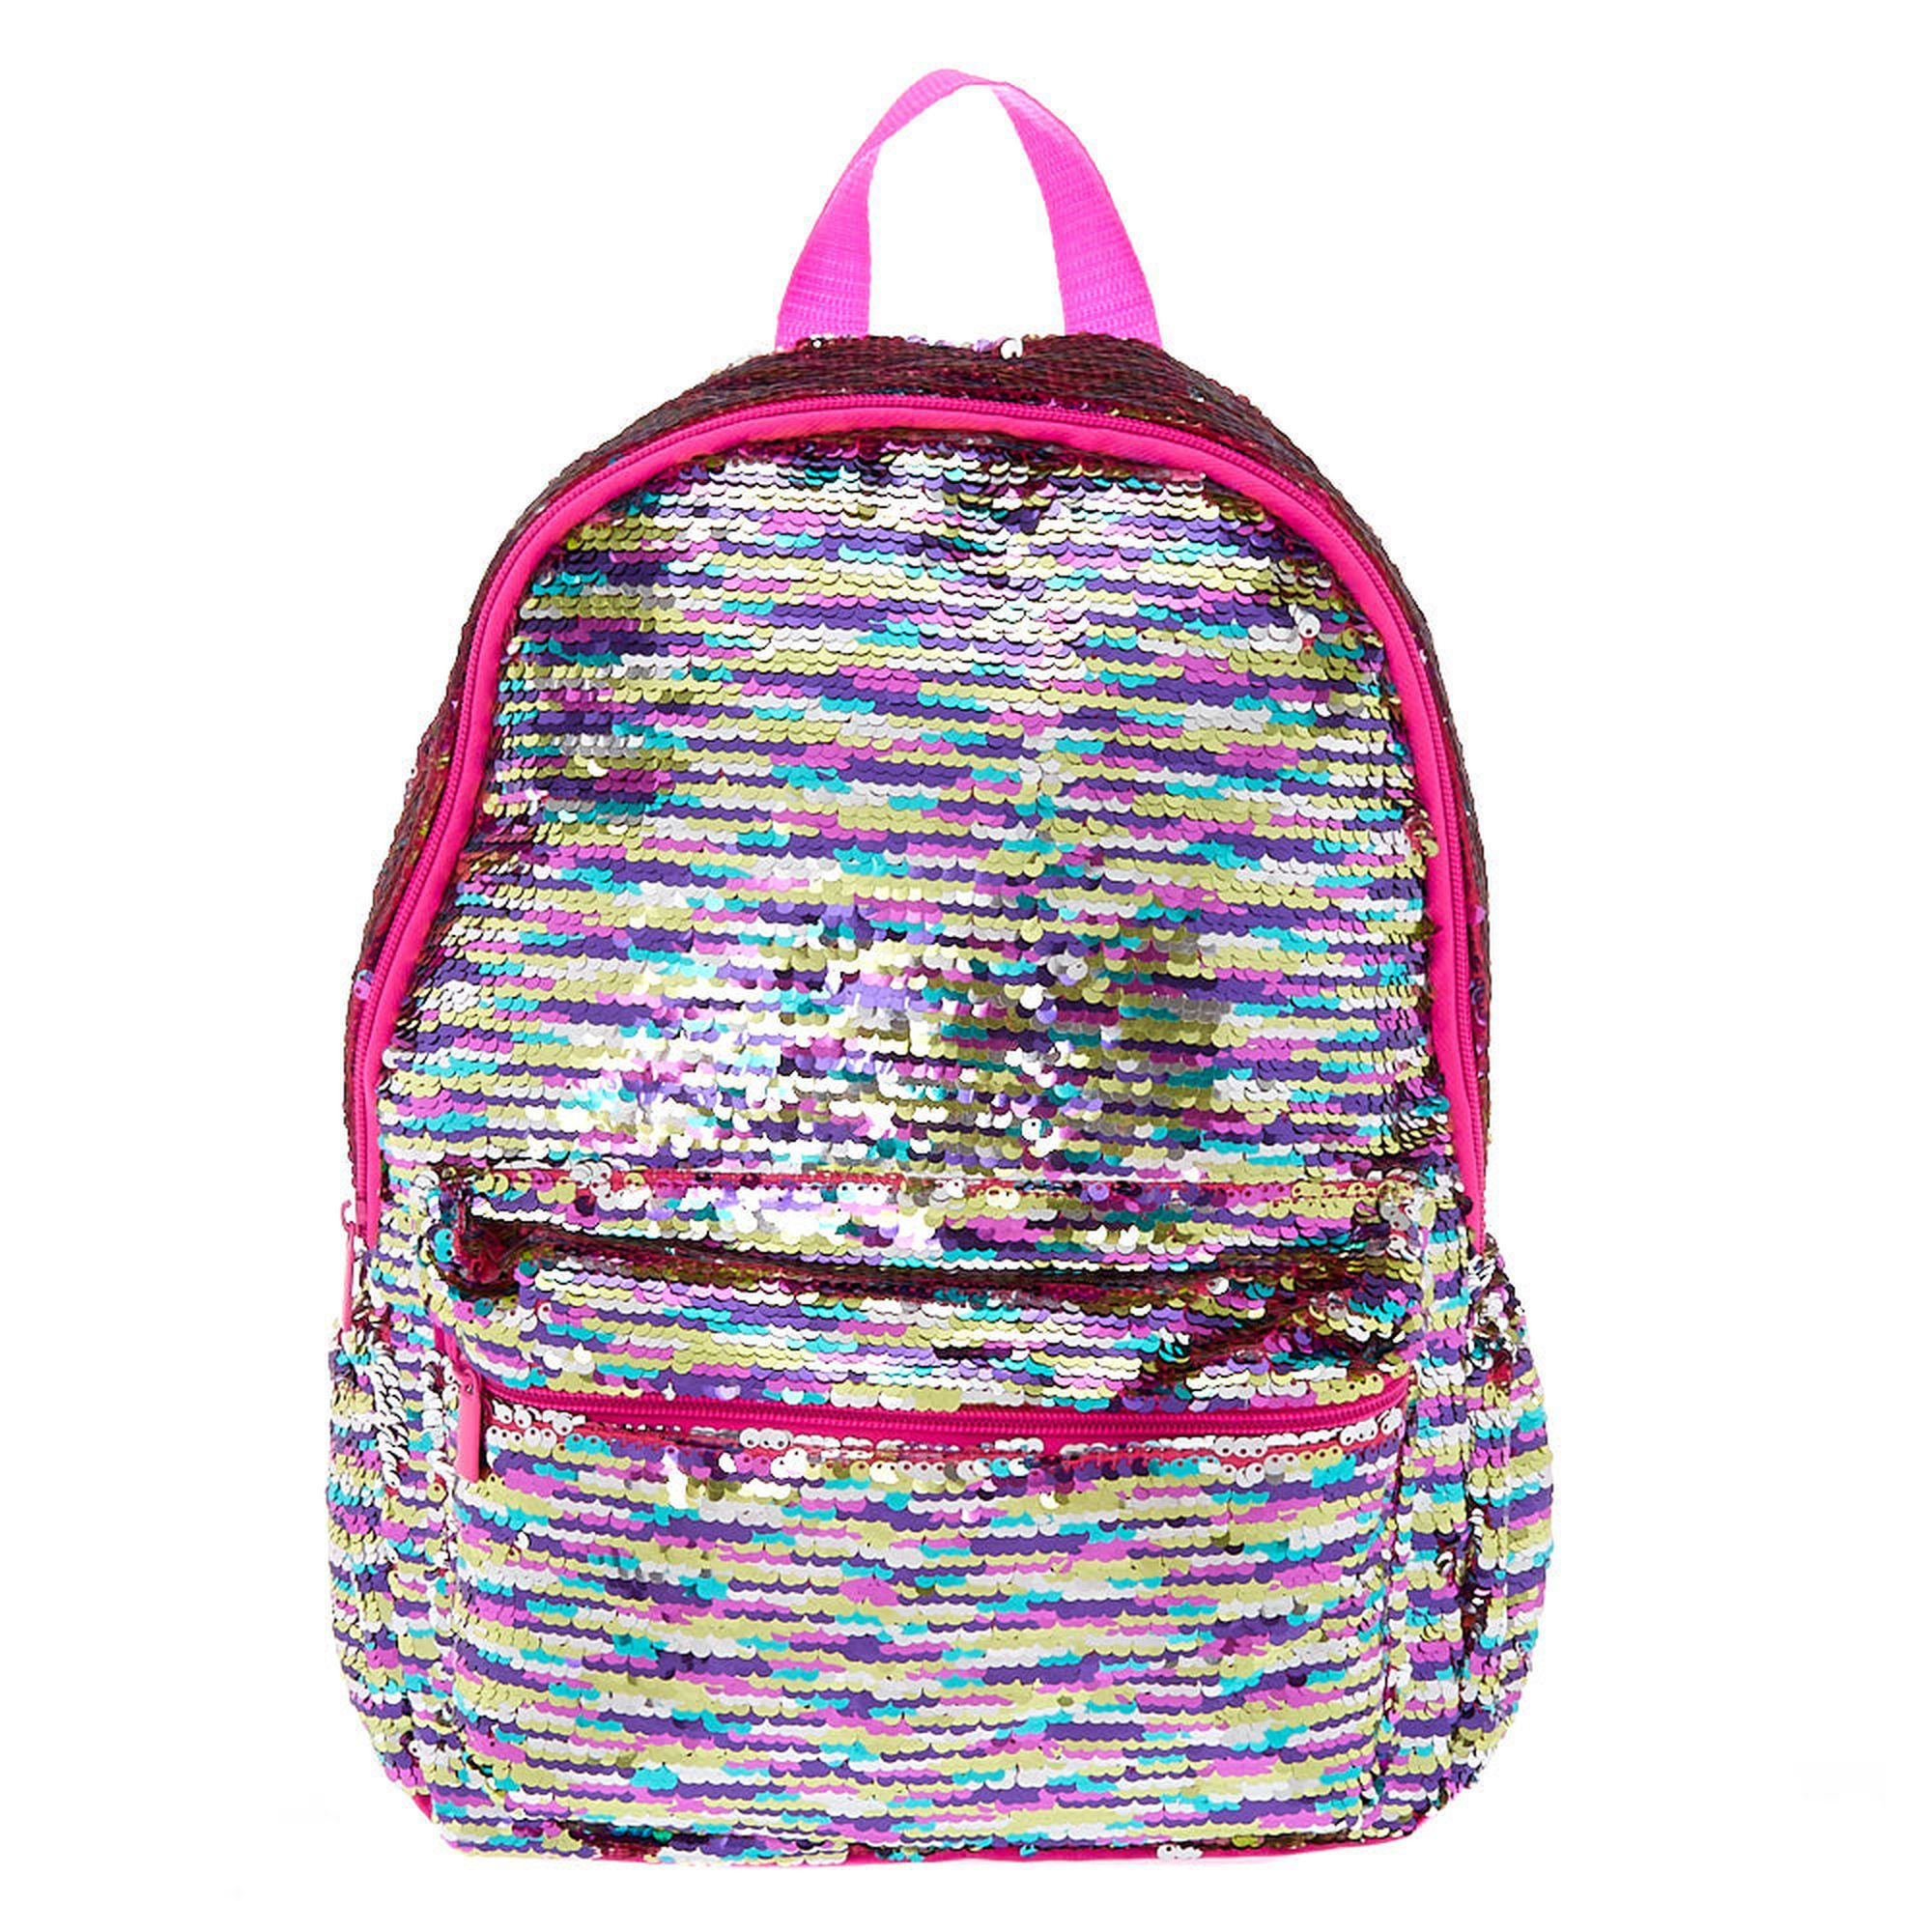 a938fb5dceeb7e Reversible Sequin Rainbow Backpack | Back 2 School in 2019 ...